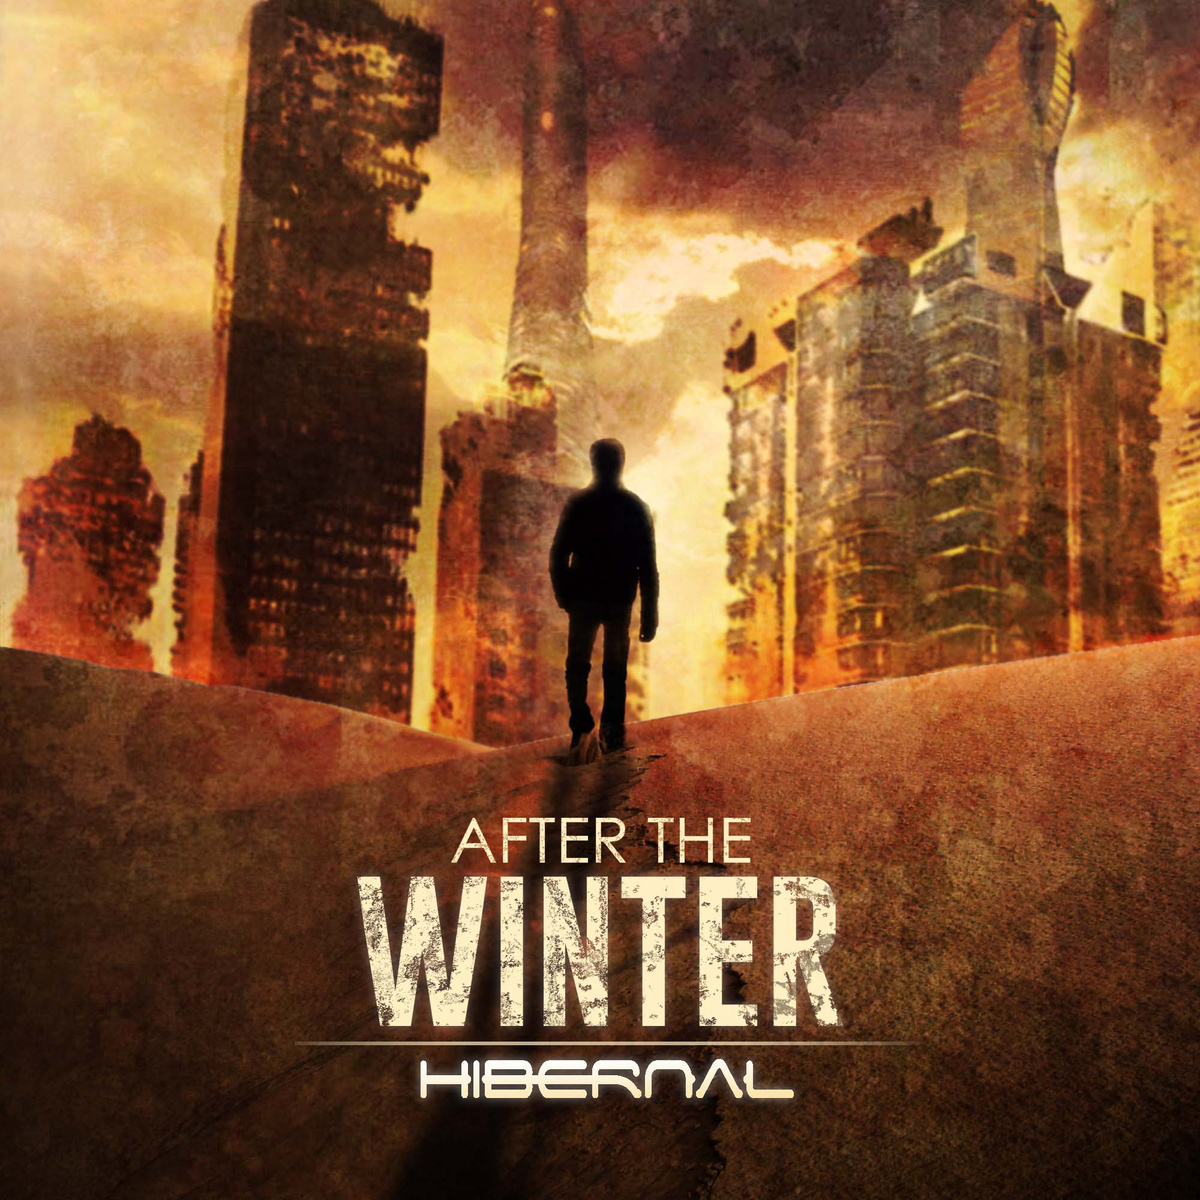 Hibernal: After the Winter